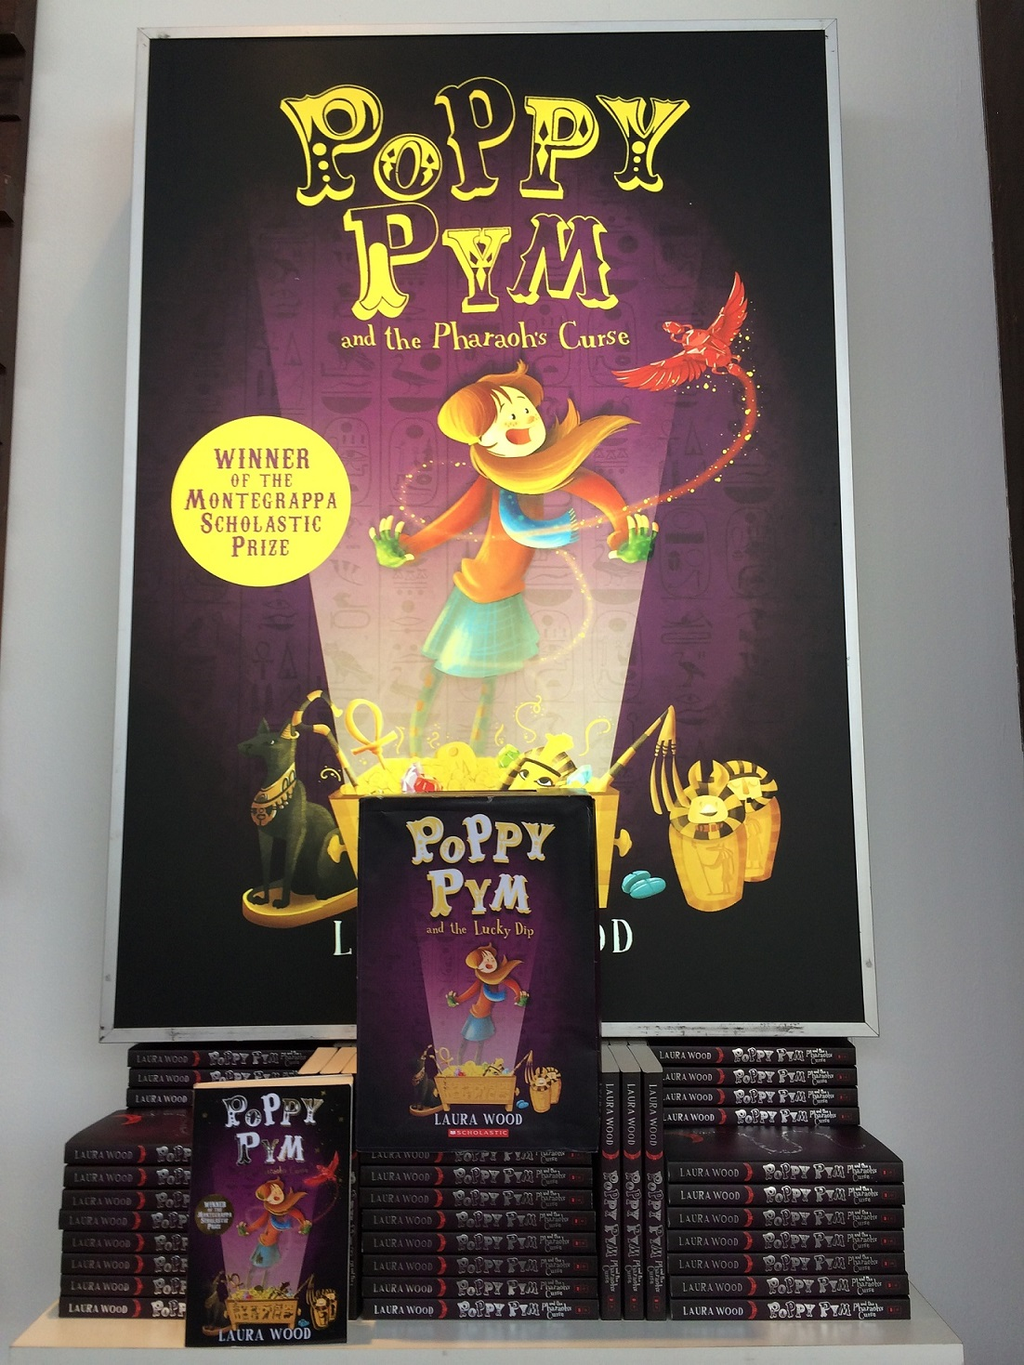 Have you met Poppy Pym at @BOChildrensBook? Visit stand A141 in Hall 25 to find out about @lauraclarewood's debut